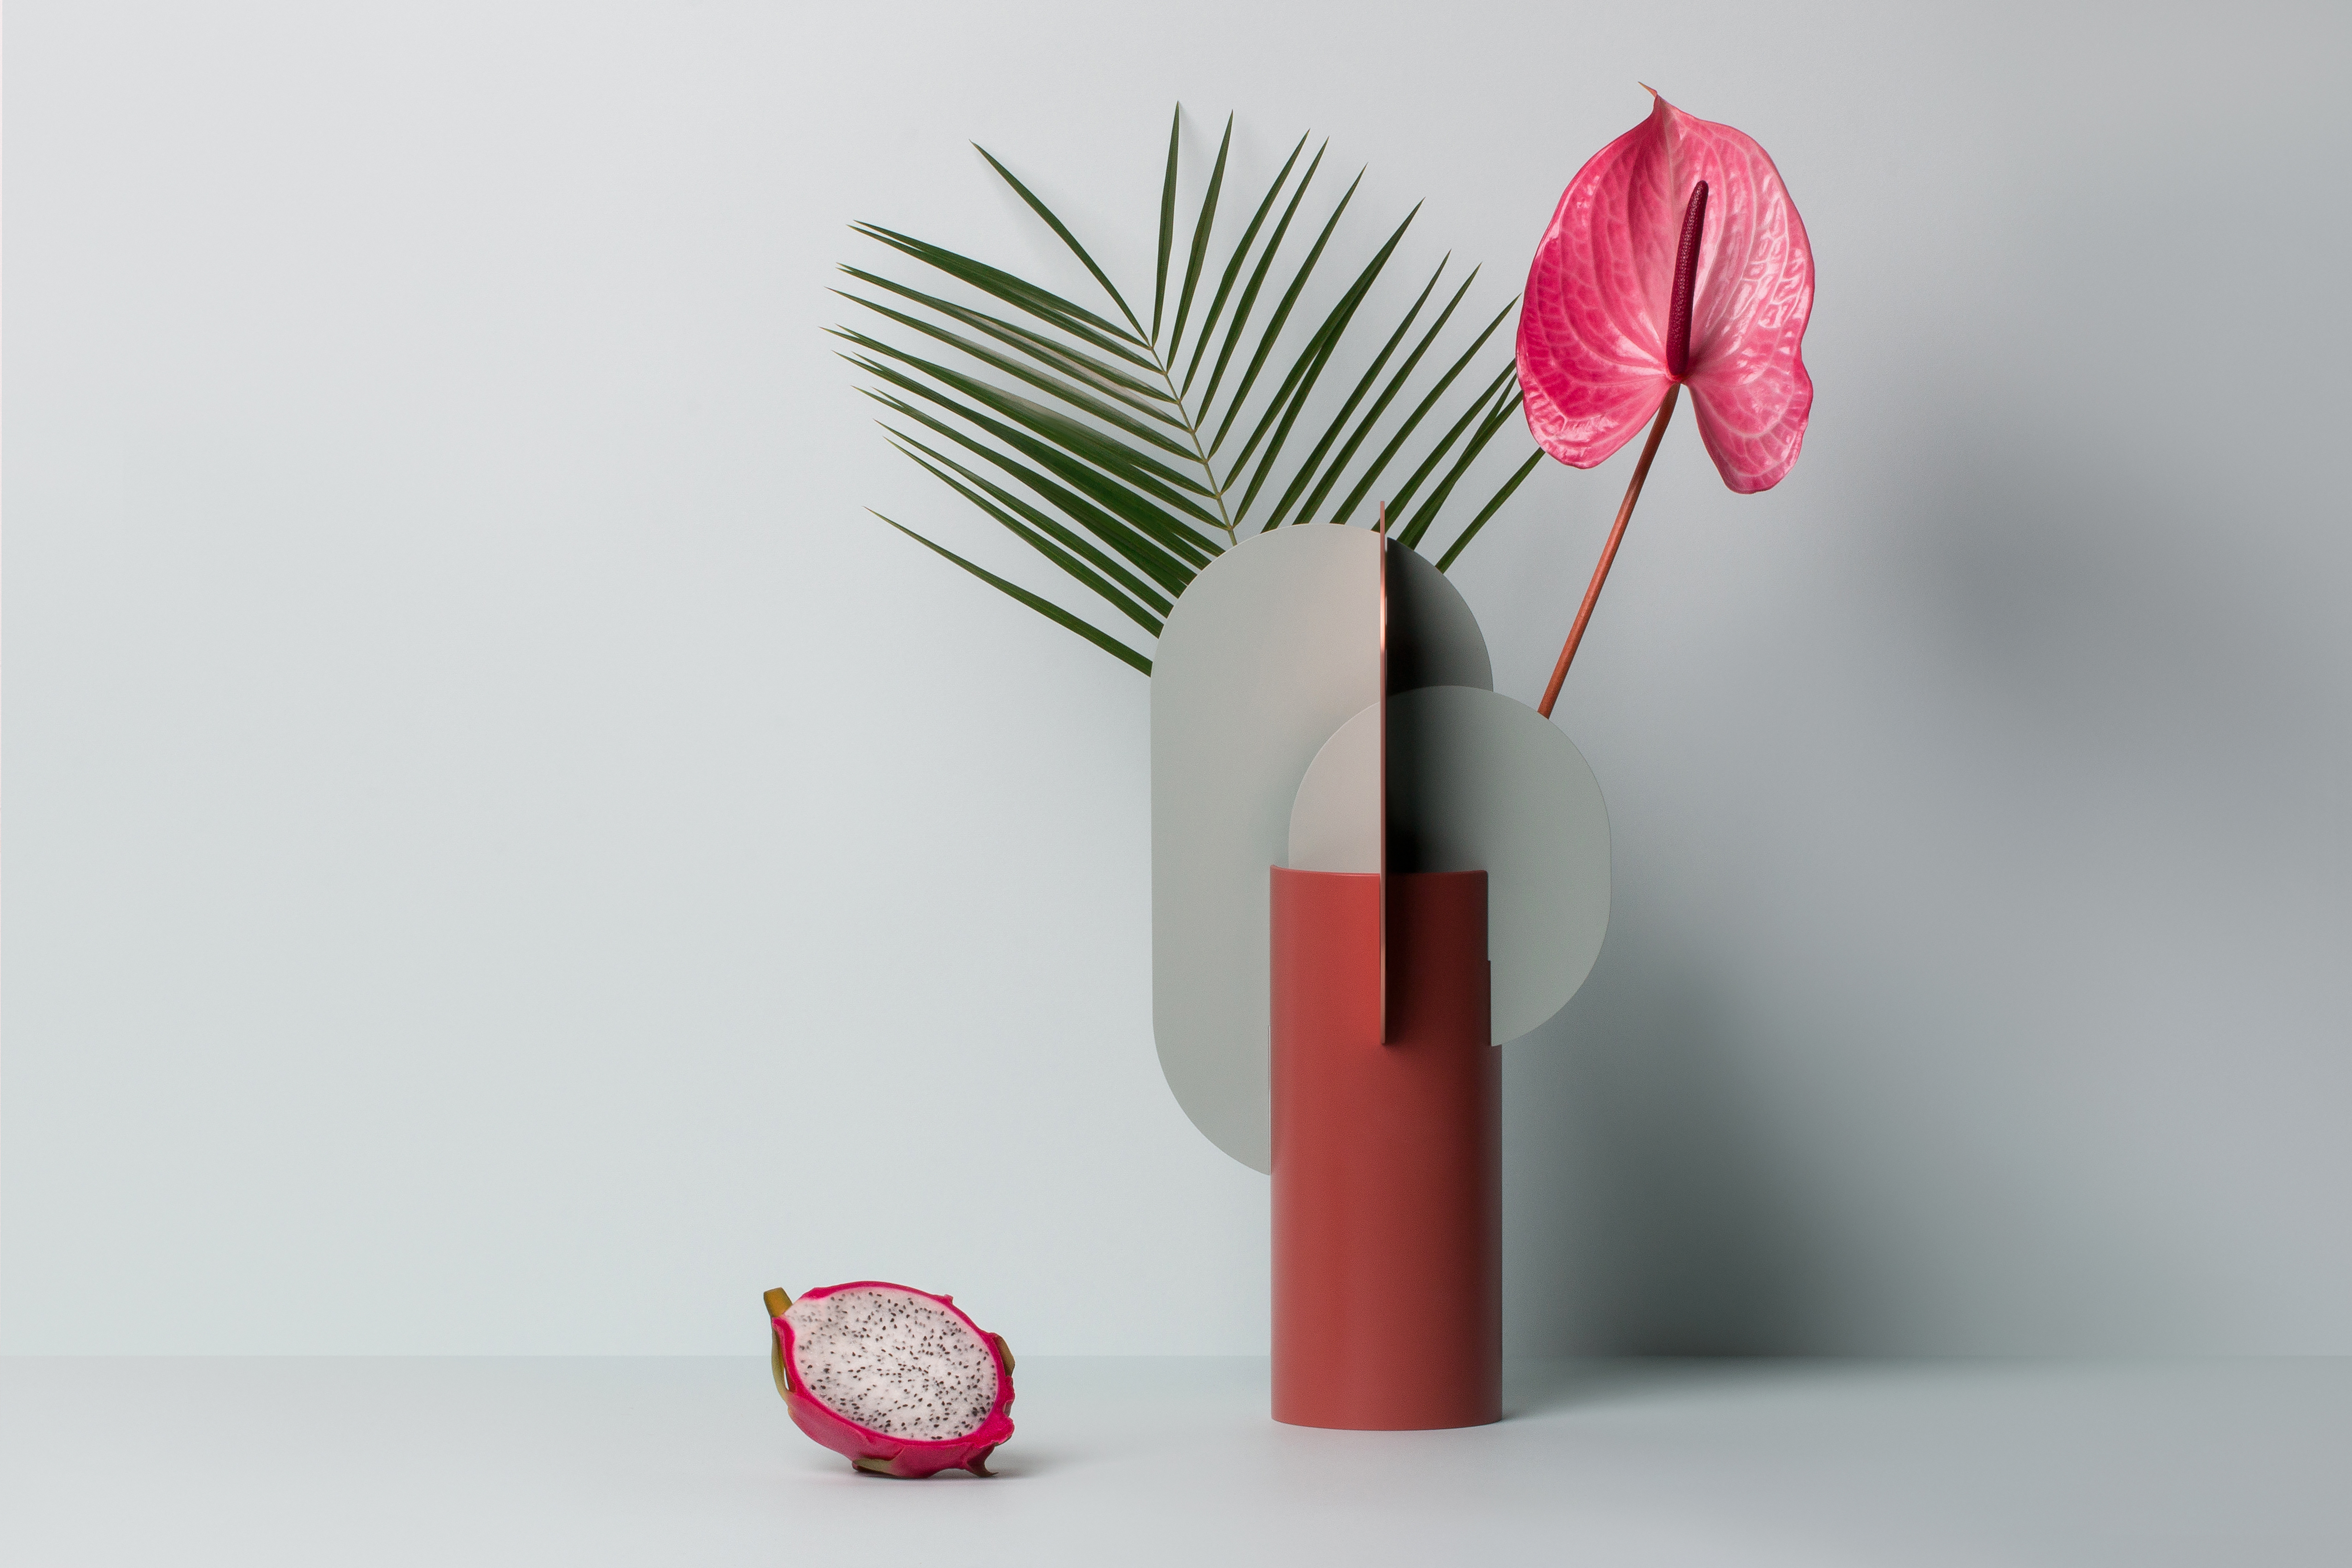 """Ekster Vase - <p>Ekster vase, one of the vases from the """"Suprematic"""" collection. <br />Collection inspired by the geometric works of the great Suprematist Kazimir Malevich. Suprematism is a modernist movement in the art of the early twentieth century, focused on the basic geometric forms, such as circles, squares, lines and rectangles.<br />The geometric structure of the vase is not only a décor, but also functional divider and holder for flowers, which allow you to create elegant compositions. <br />Even an empty vase will always look like a small art object in your house.</p>  